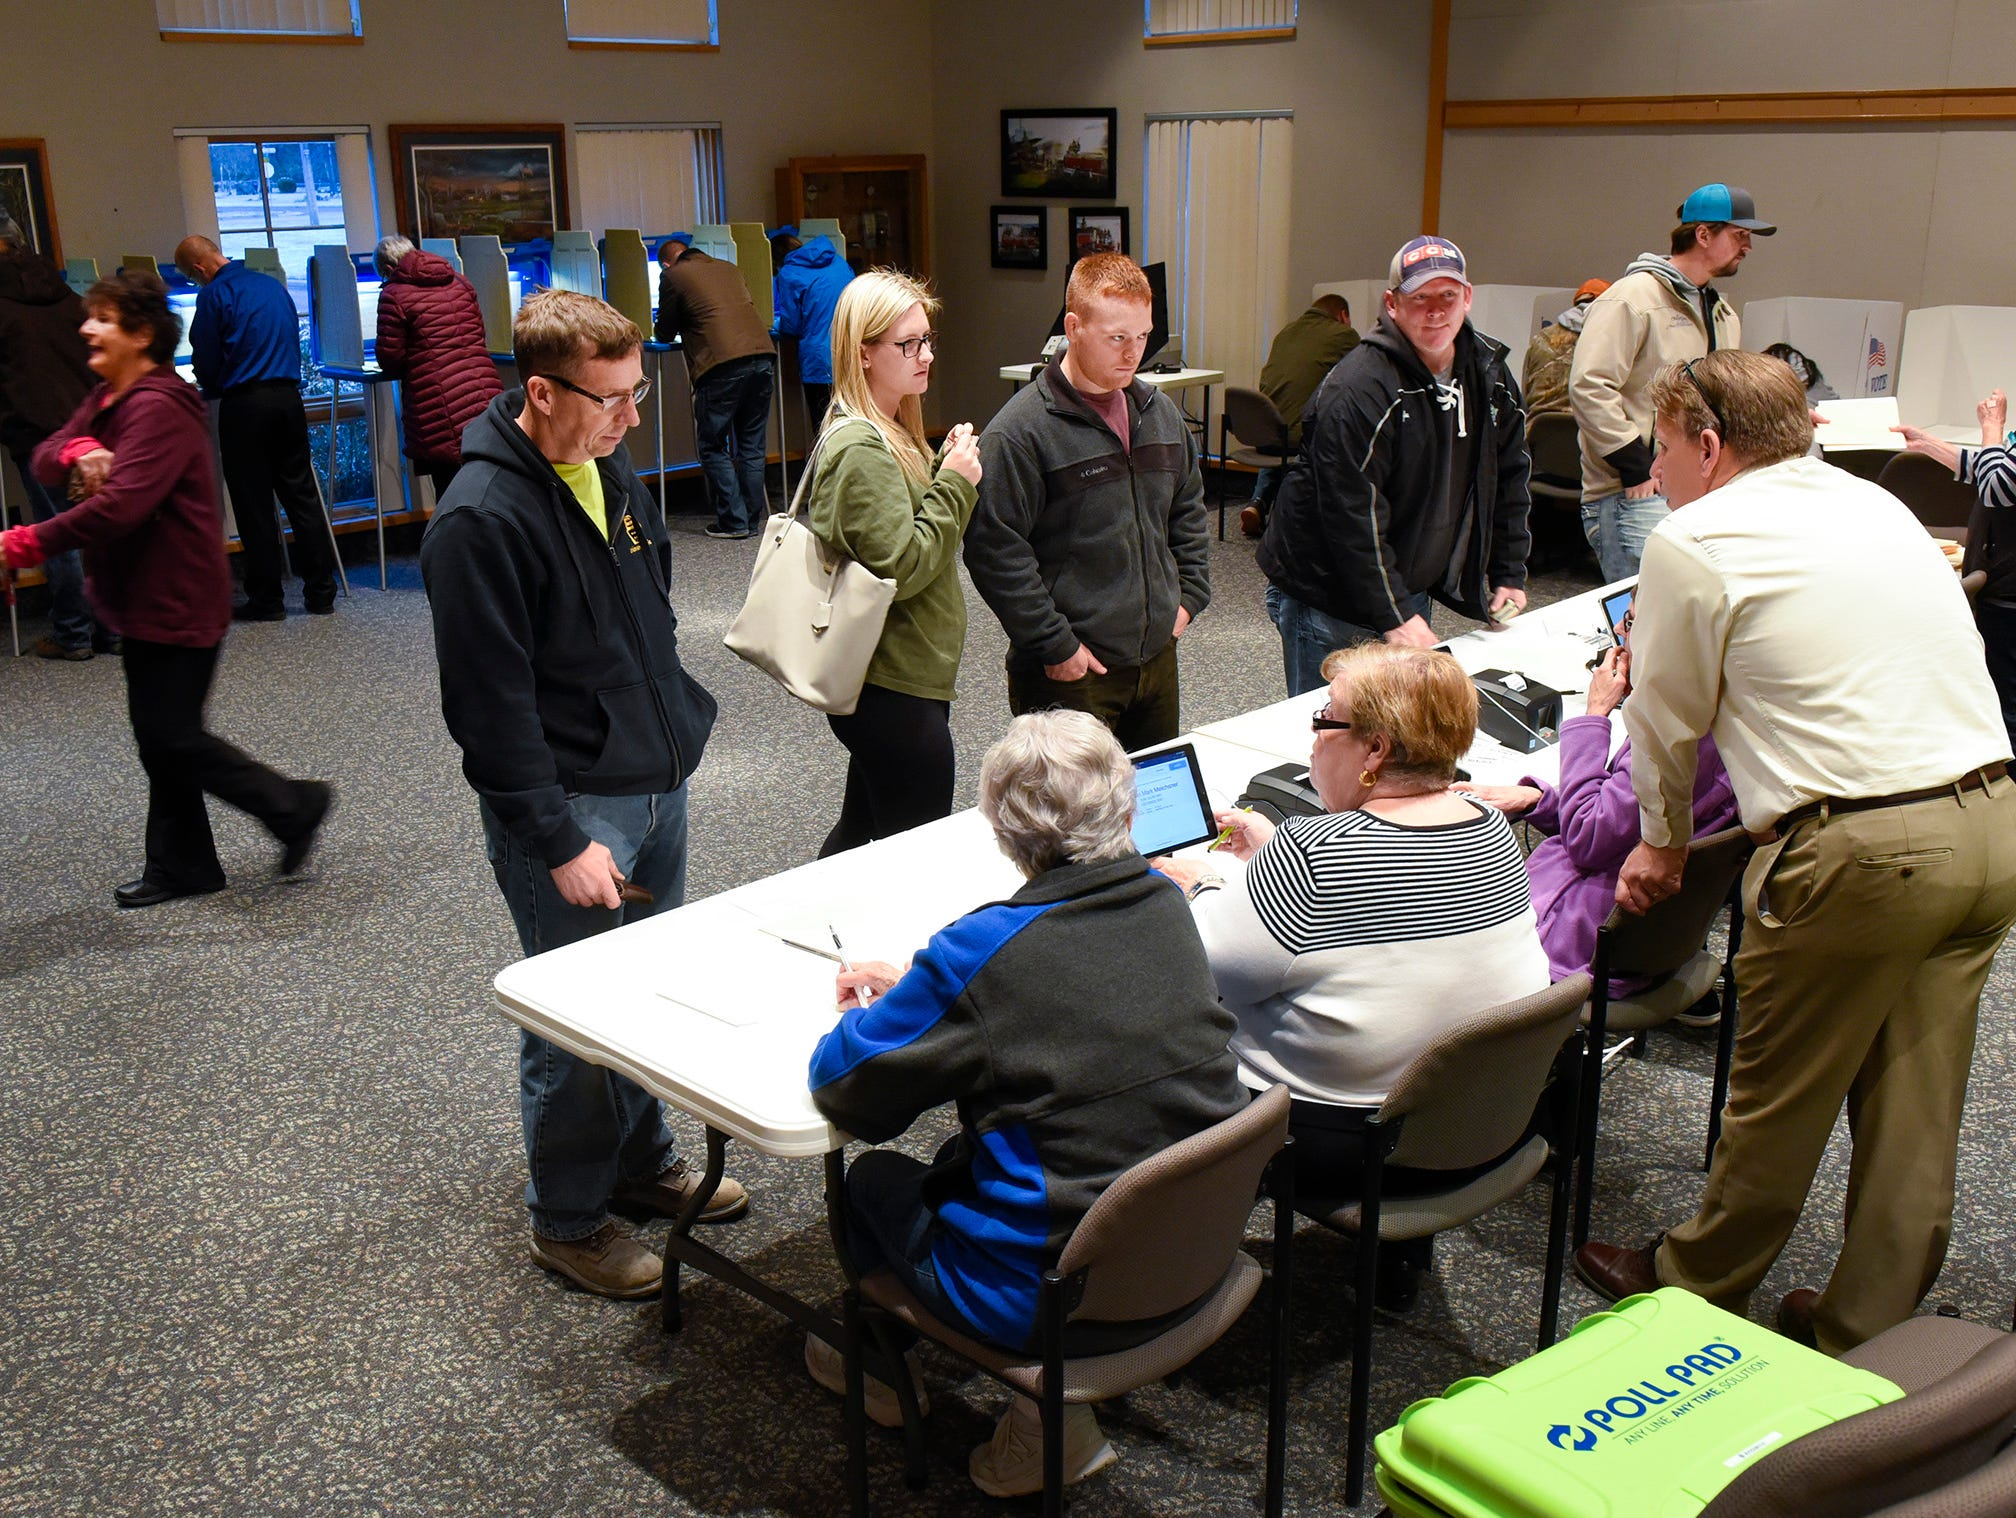 Voters register with judges then fill out their ballots Tuesday, Nov. 6, at the Sartell City Hall.